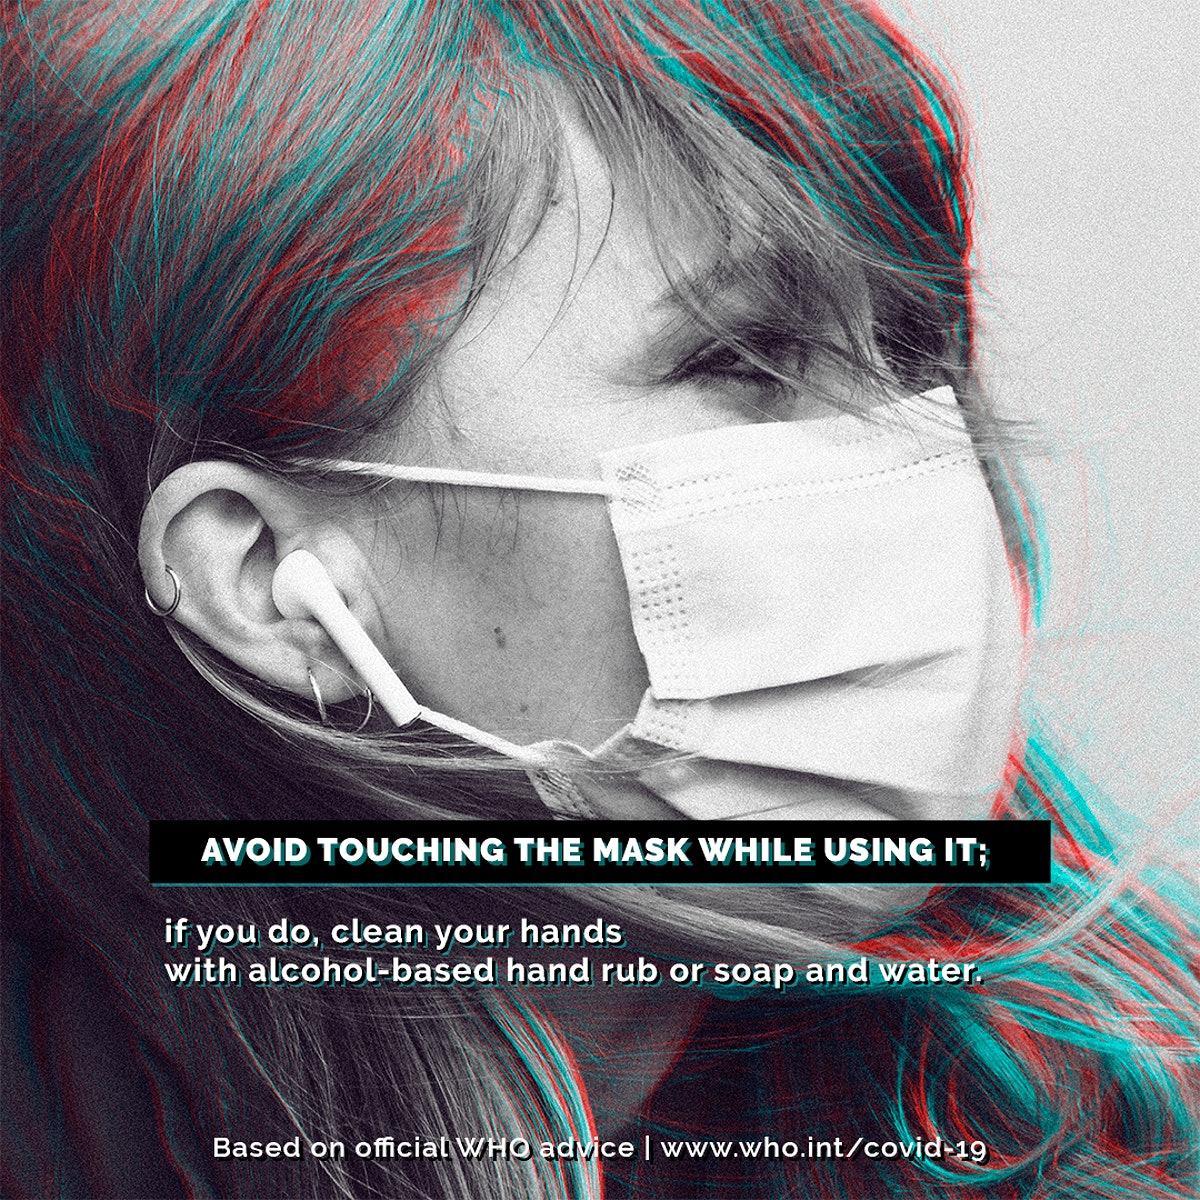 Mask wearing tips during the COVID-19 pandemic by WHO psd mockup social ad